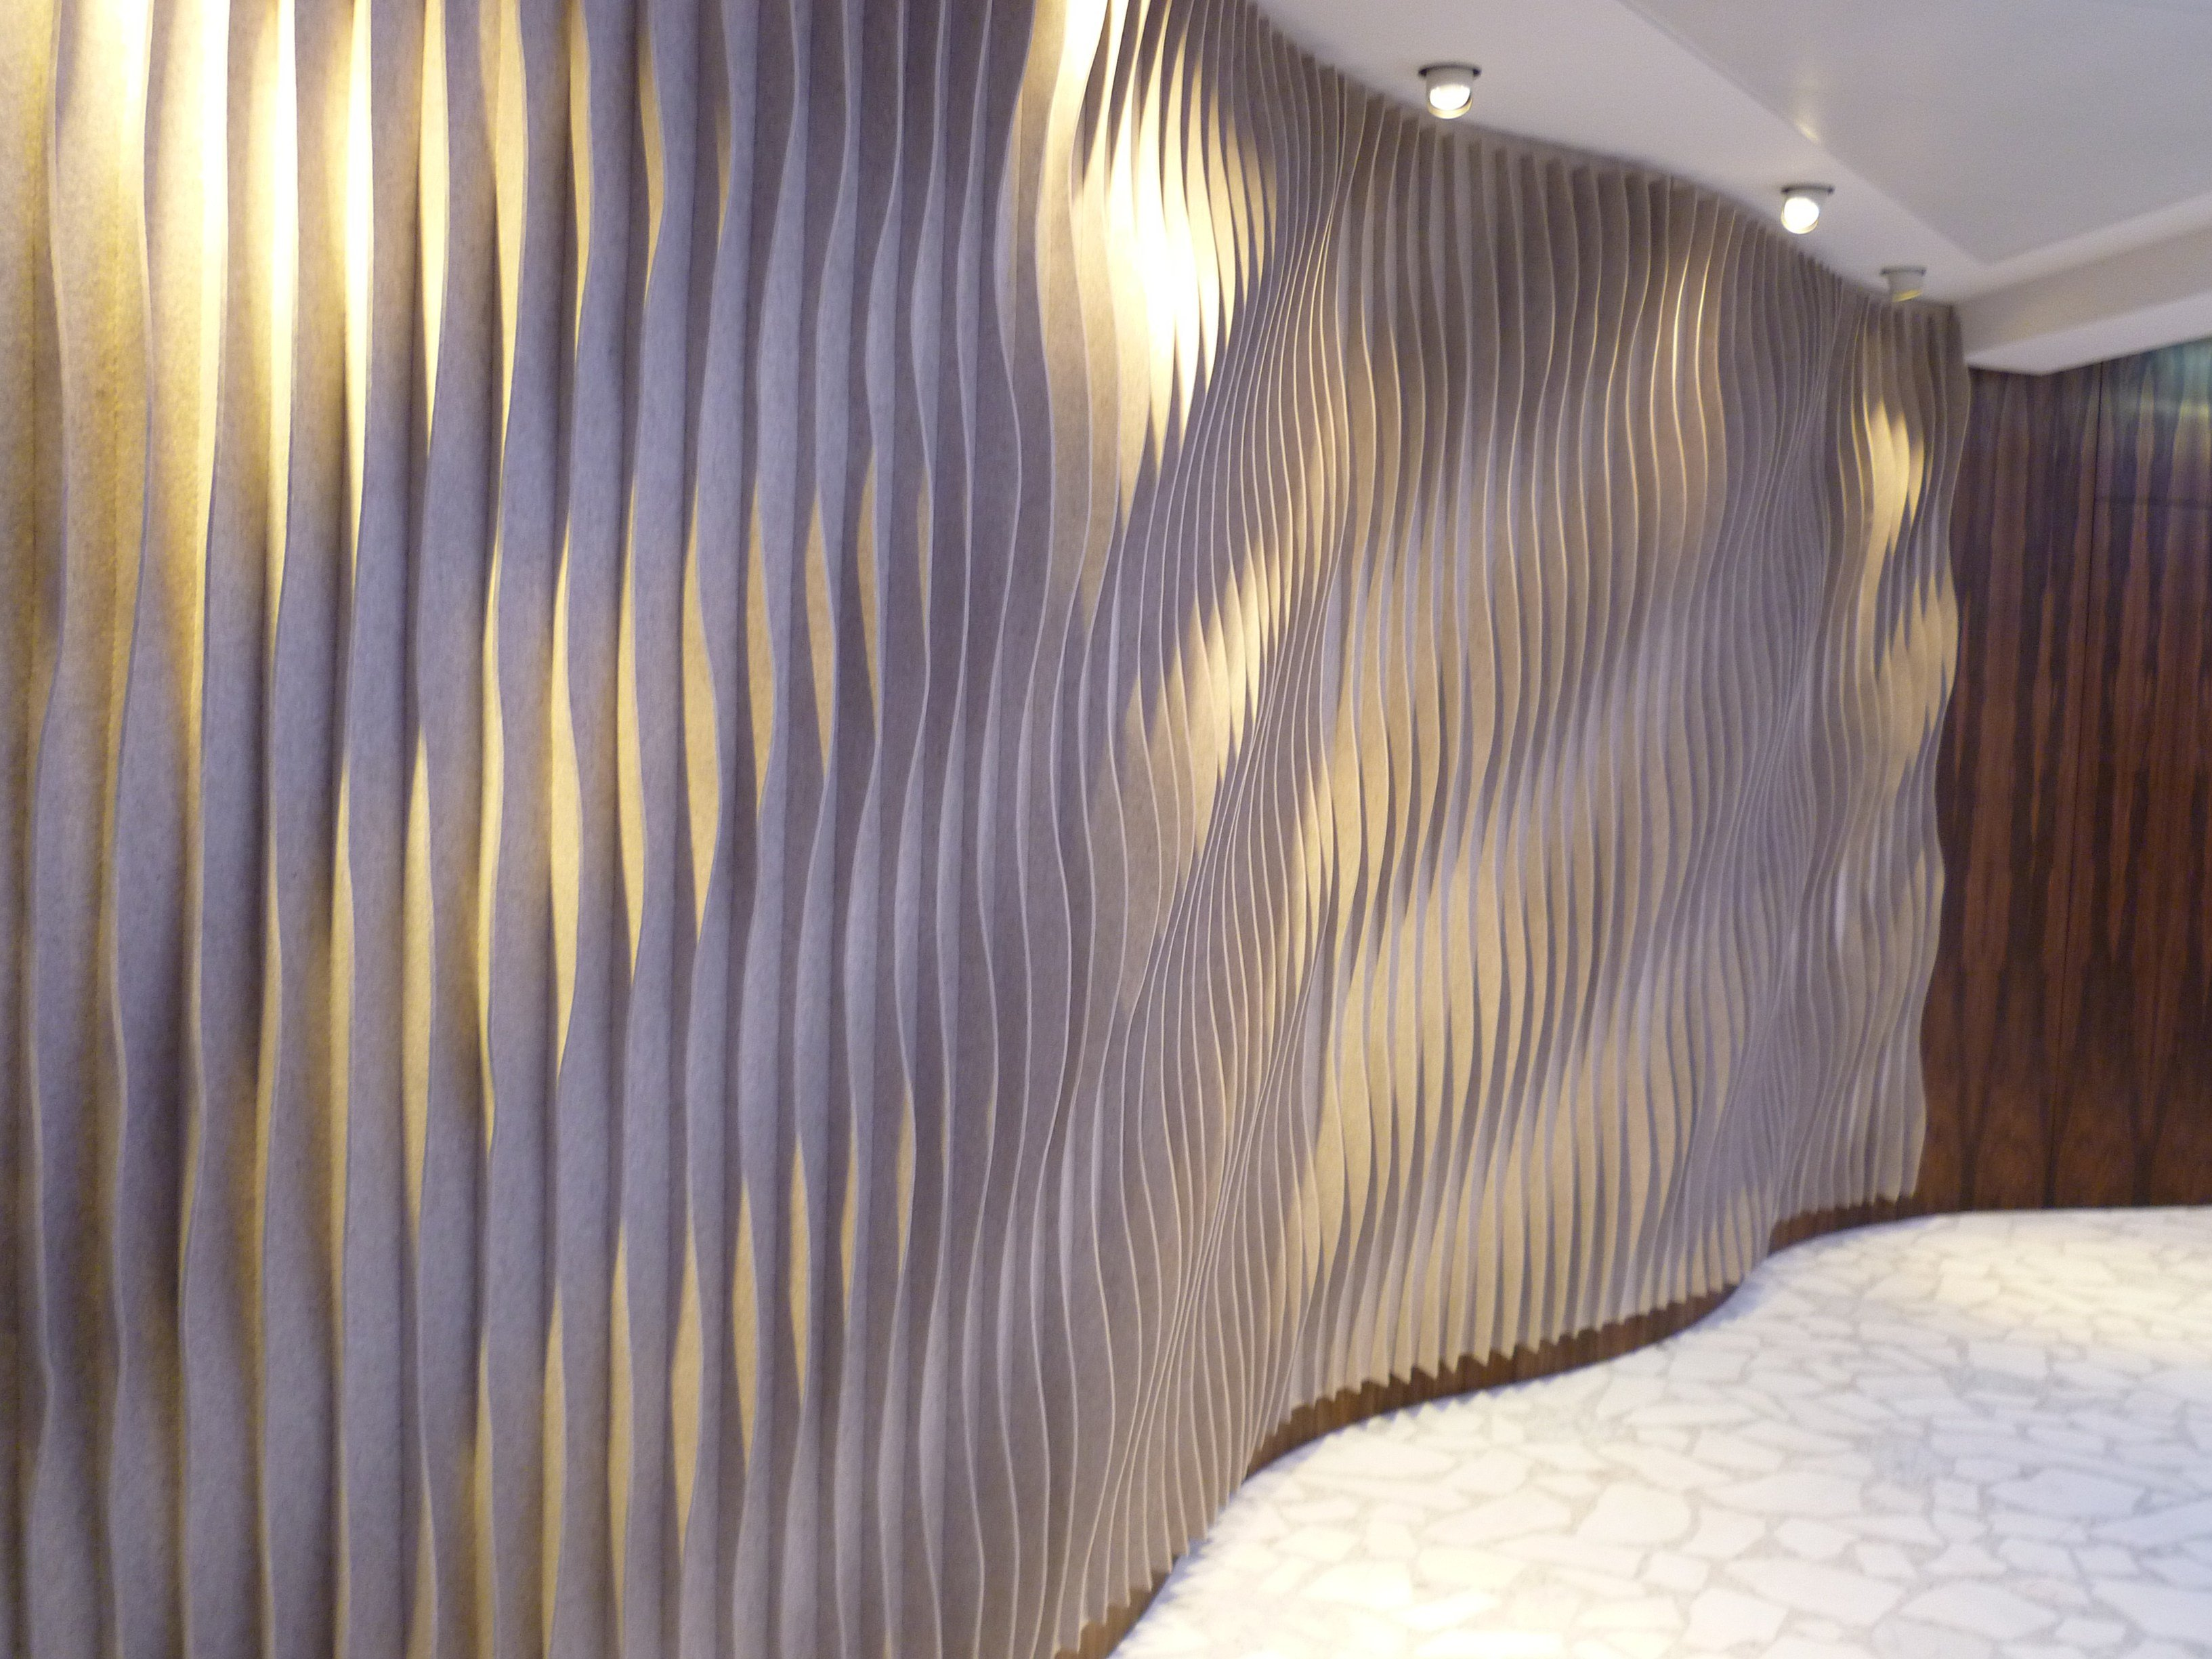 Decorative Acoustic Wall Panels laine curved | decorative acoustical panelanne kyyrö quinn